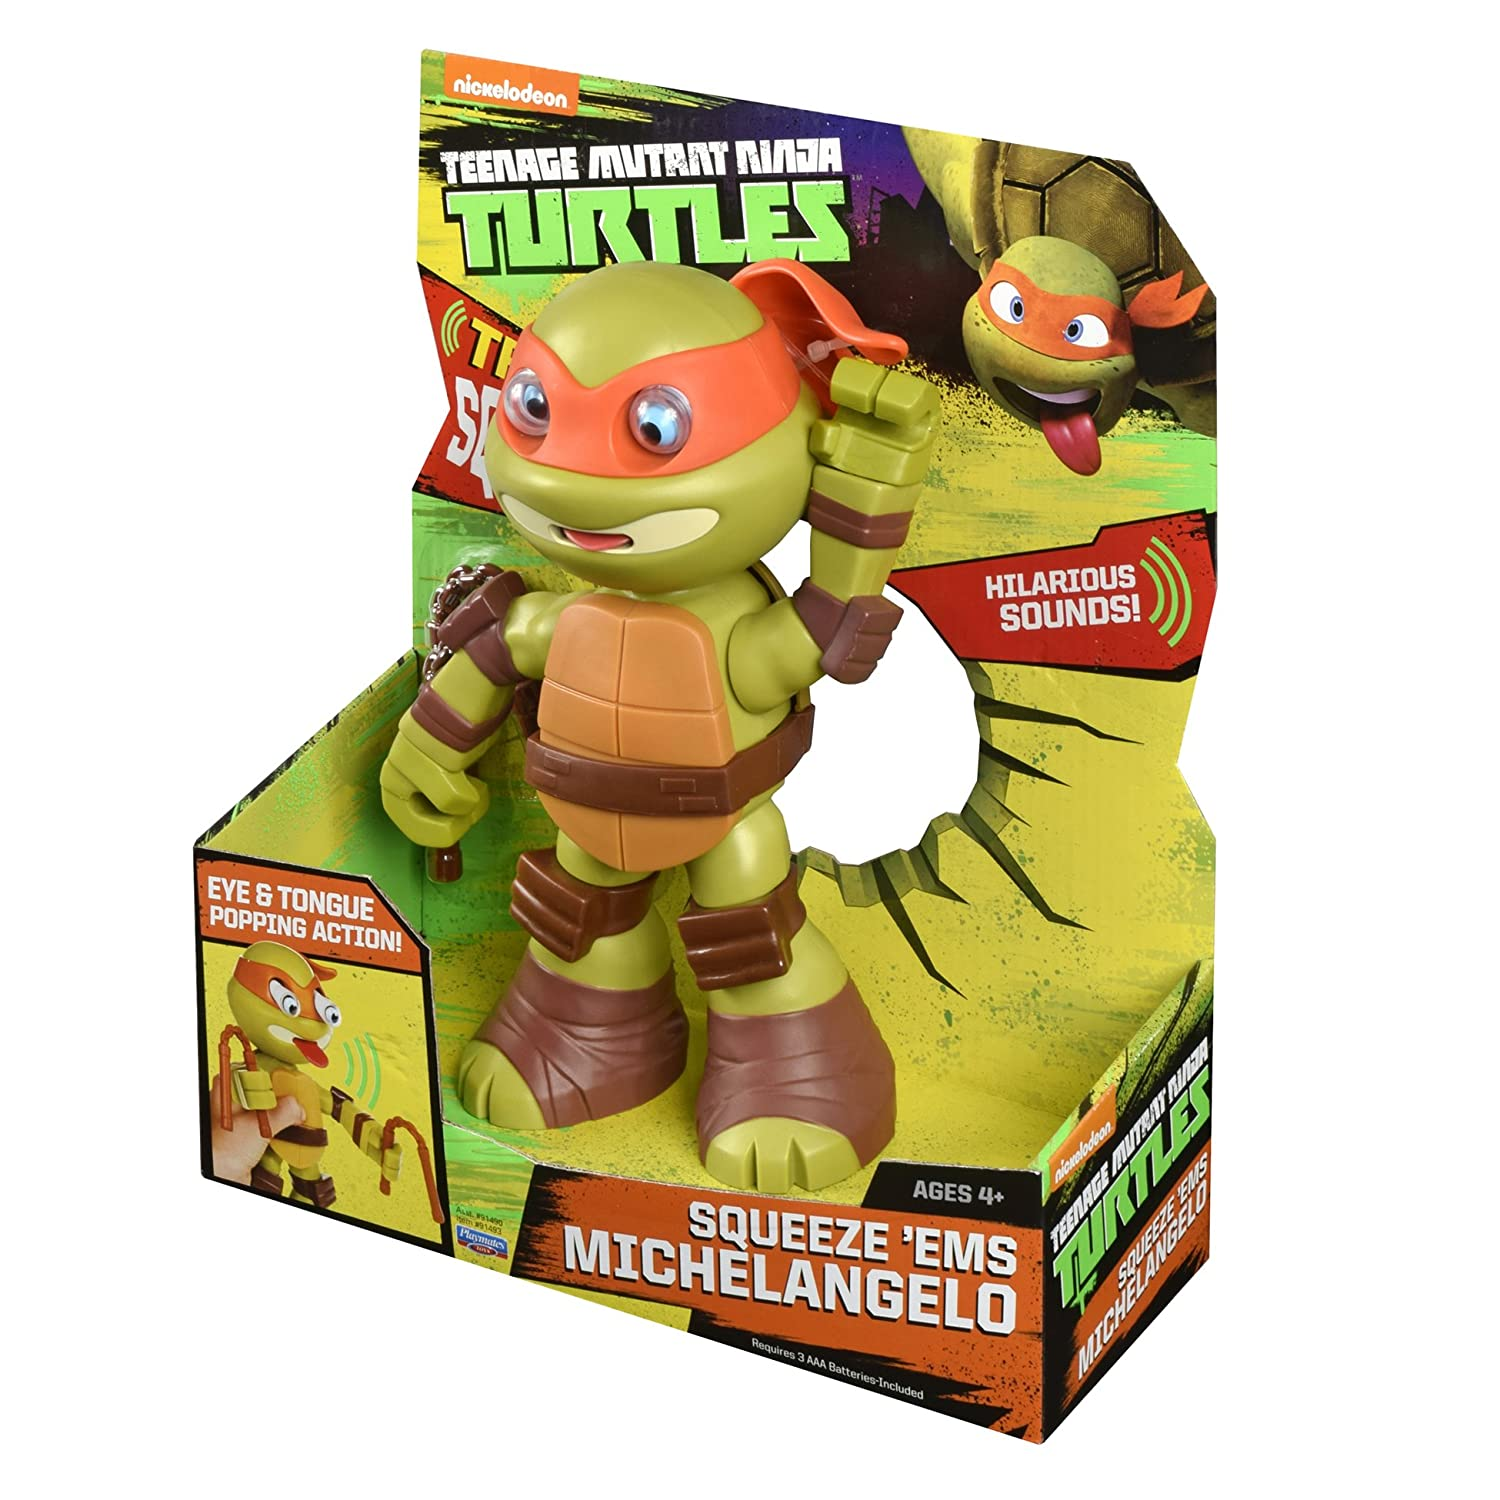 Amazon.com: Teenage Mutant Ninja Turtles Squeeze EMS Michelangelo Action Figure: Toys & Games